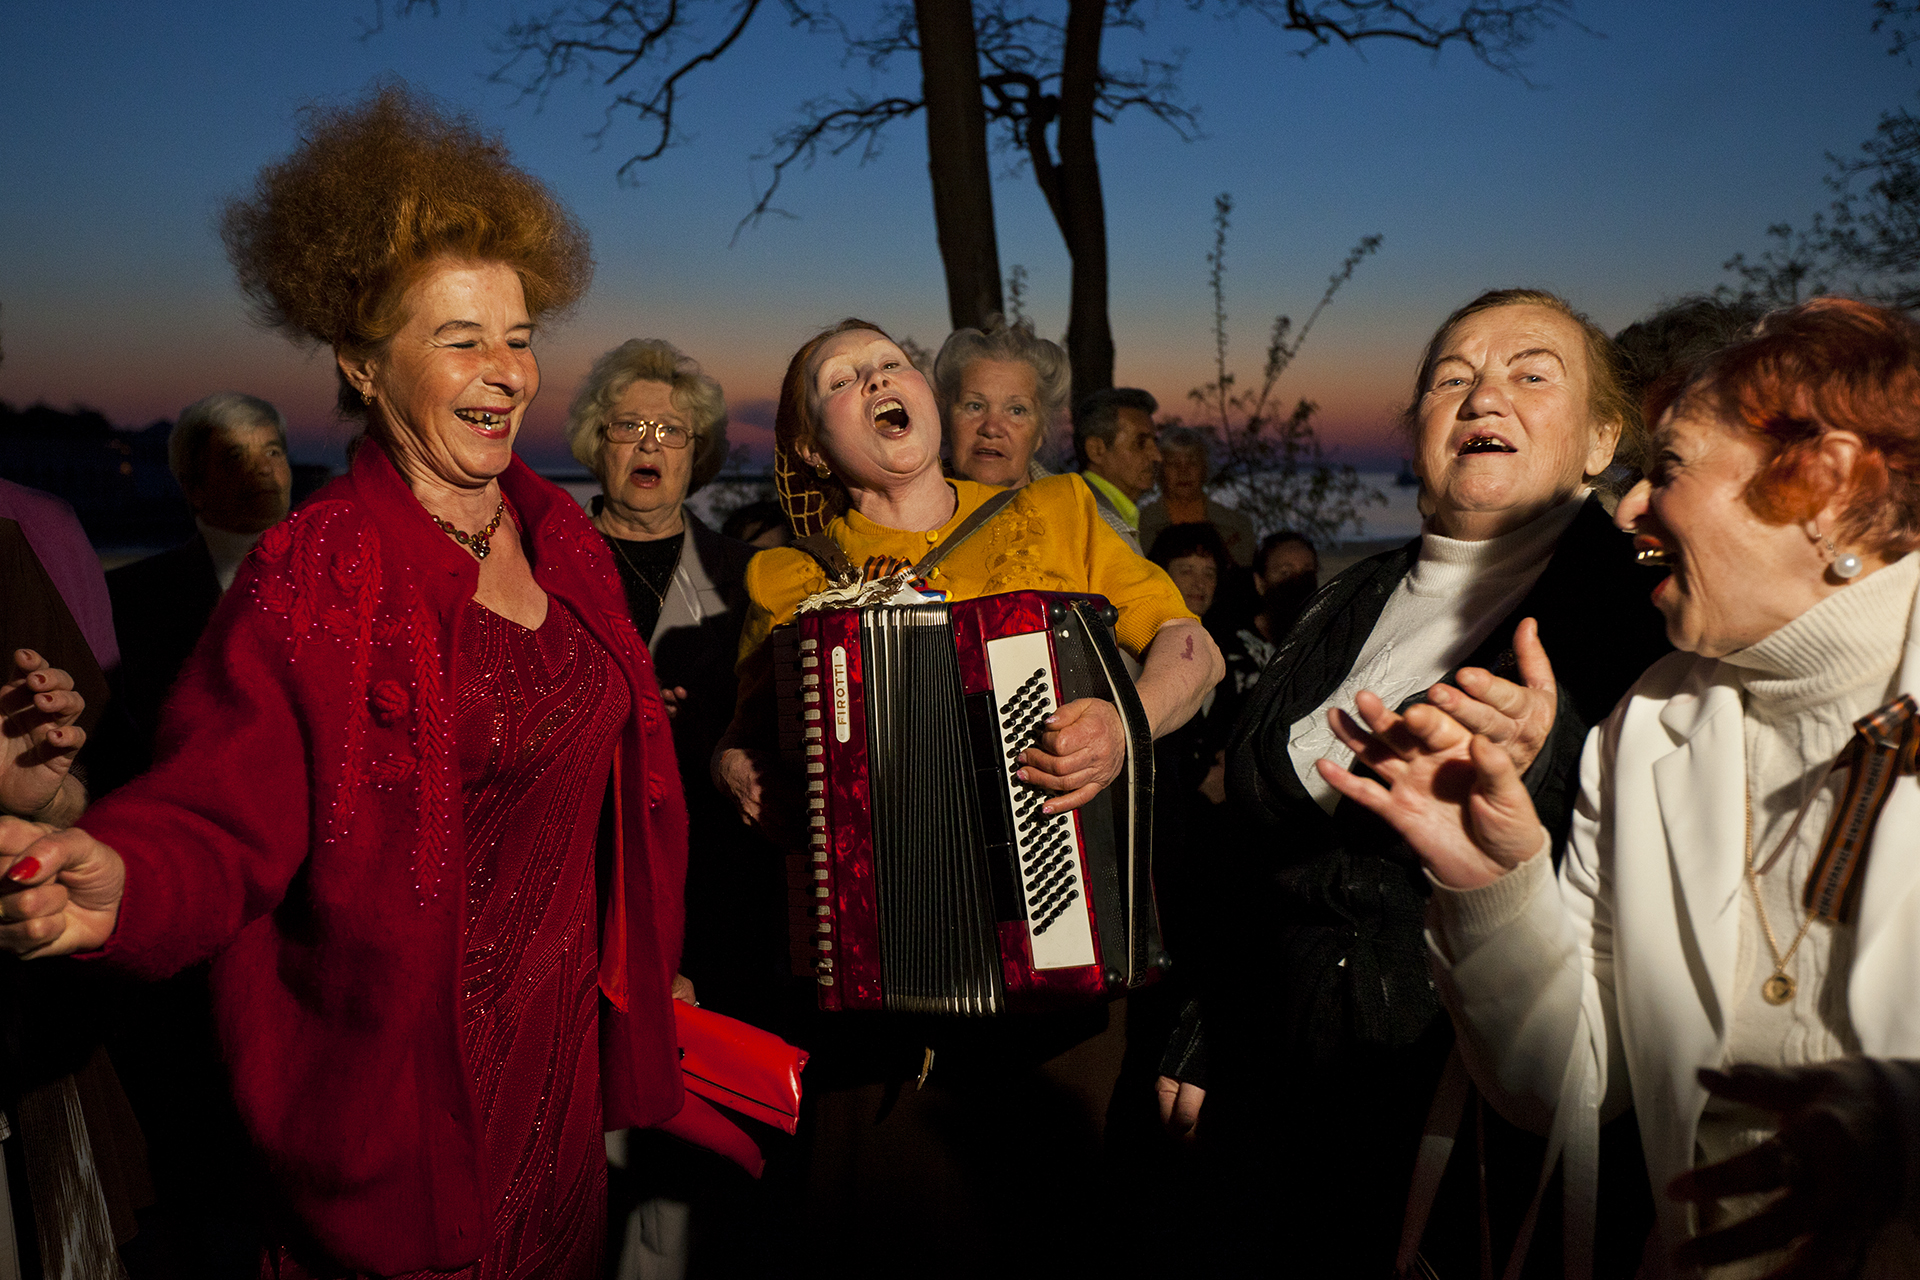 Chords of friendship bind accordionist Olesya Kamovich and comrades, who meet Sundays in Sevastopol on the promenade to sing and dance into the early night.  Sevastopol, Crimea